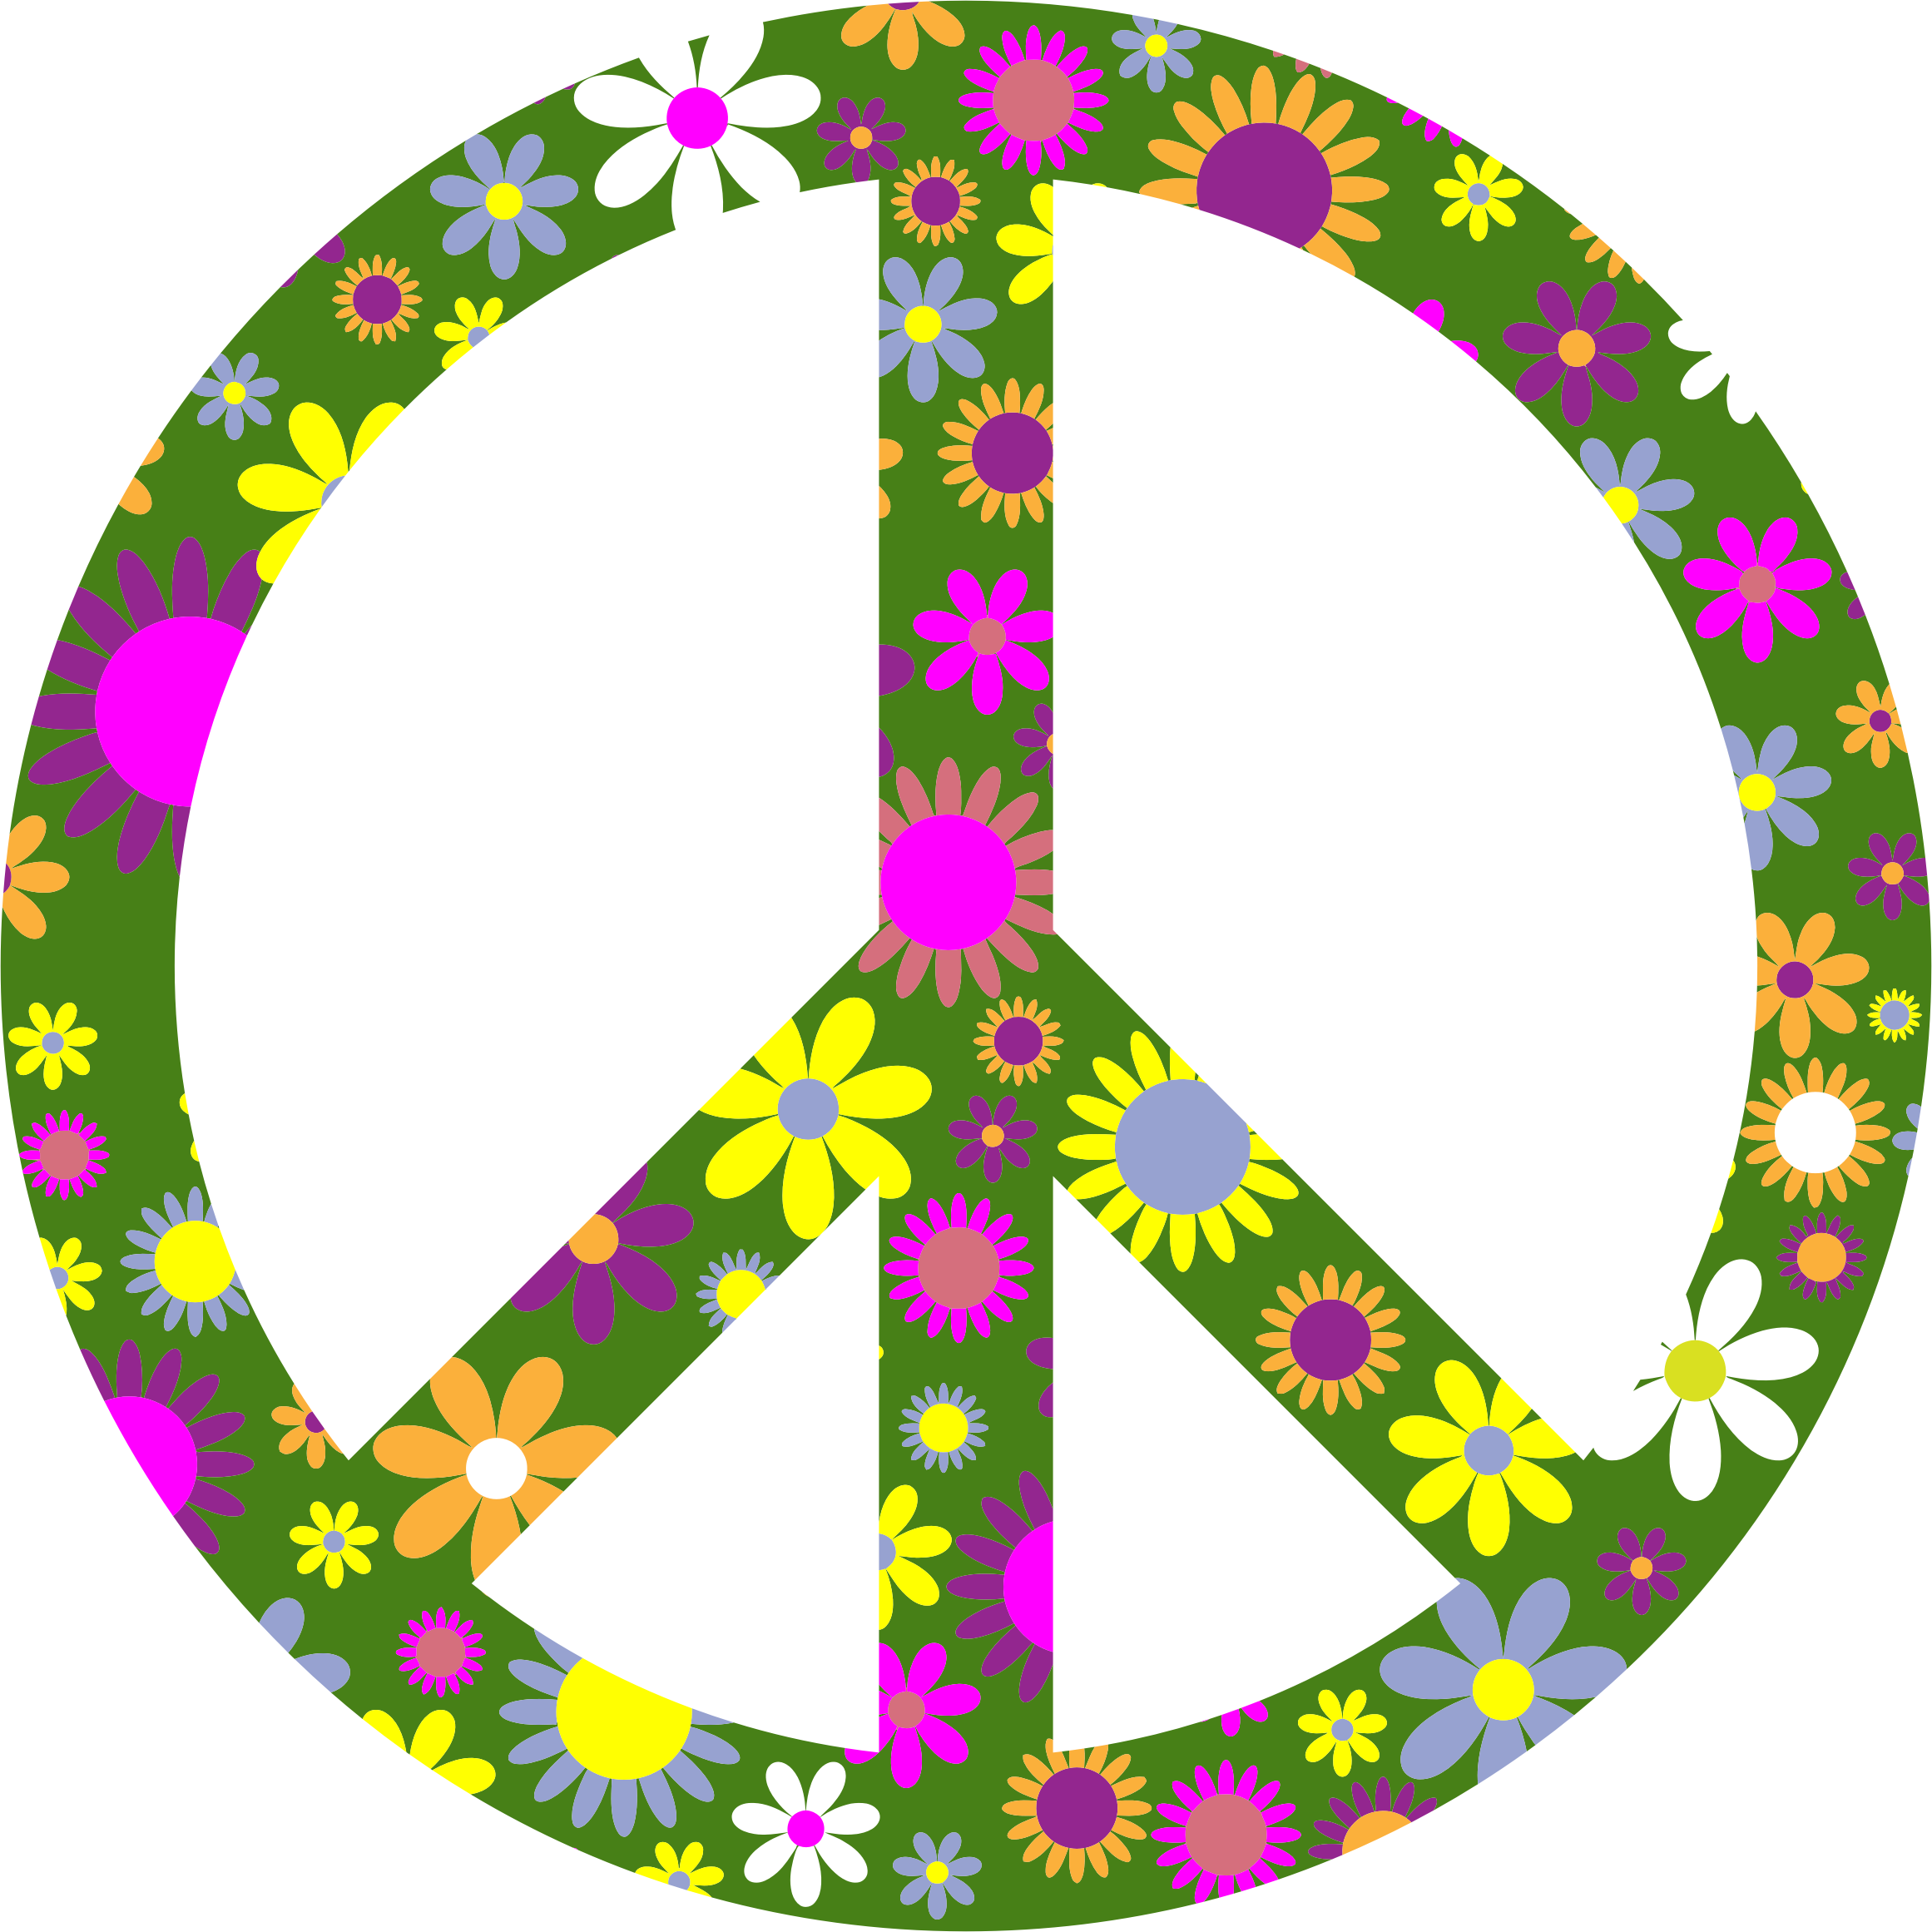 Retro Floral Peace Sign by GDJ